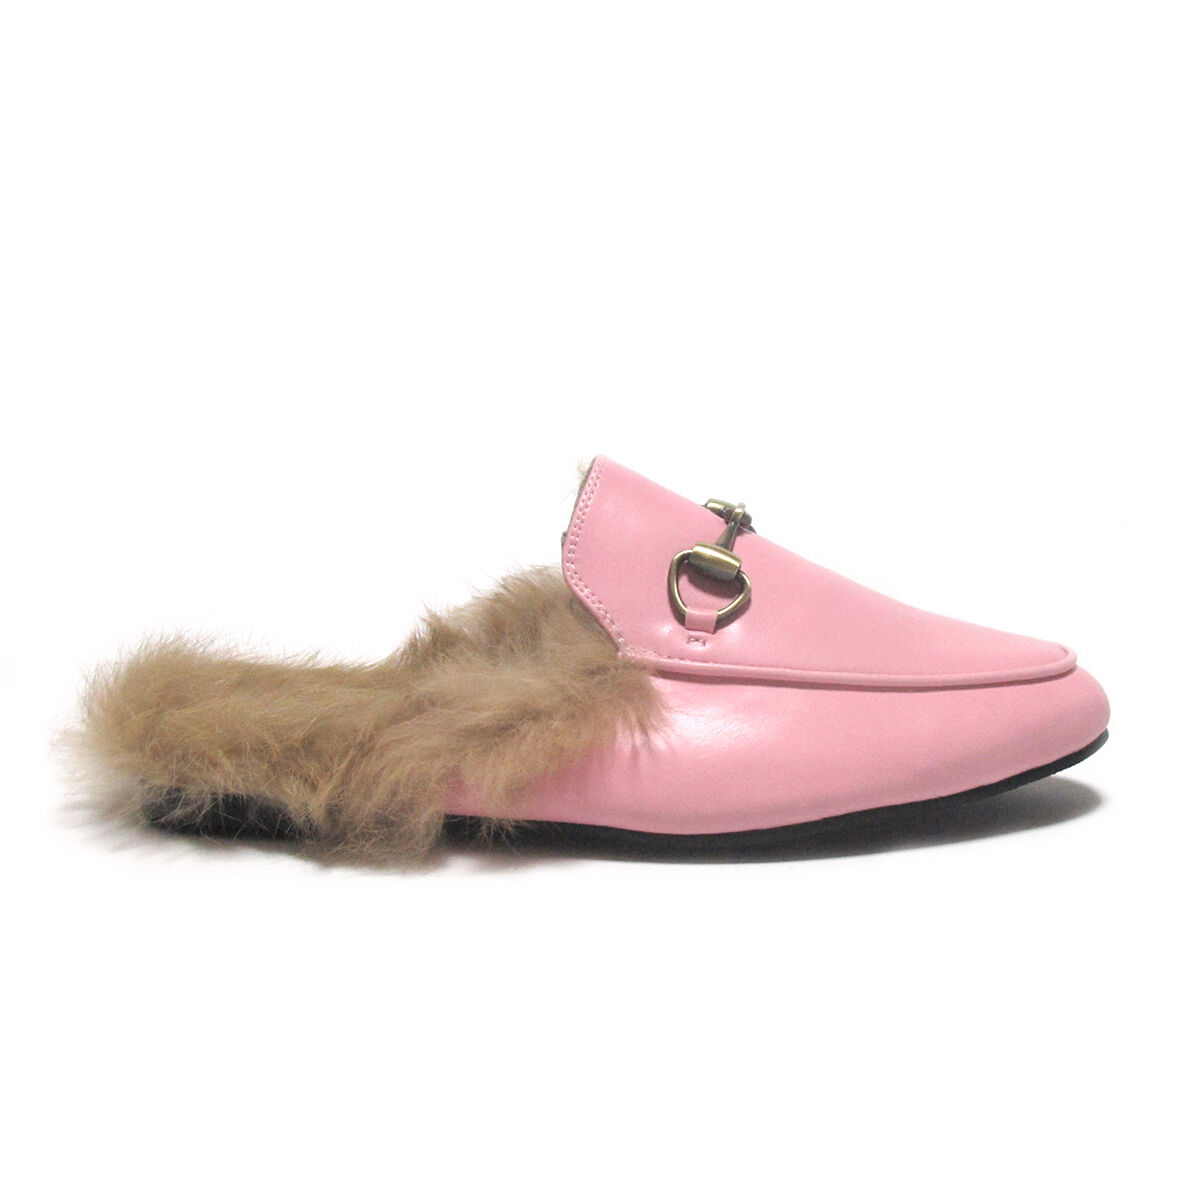 Horsebit Detailed Rabbit-Fur Lined Pink Princetown Slide Loafers Slippers